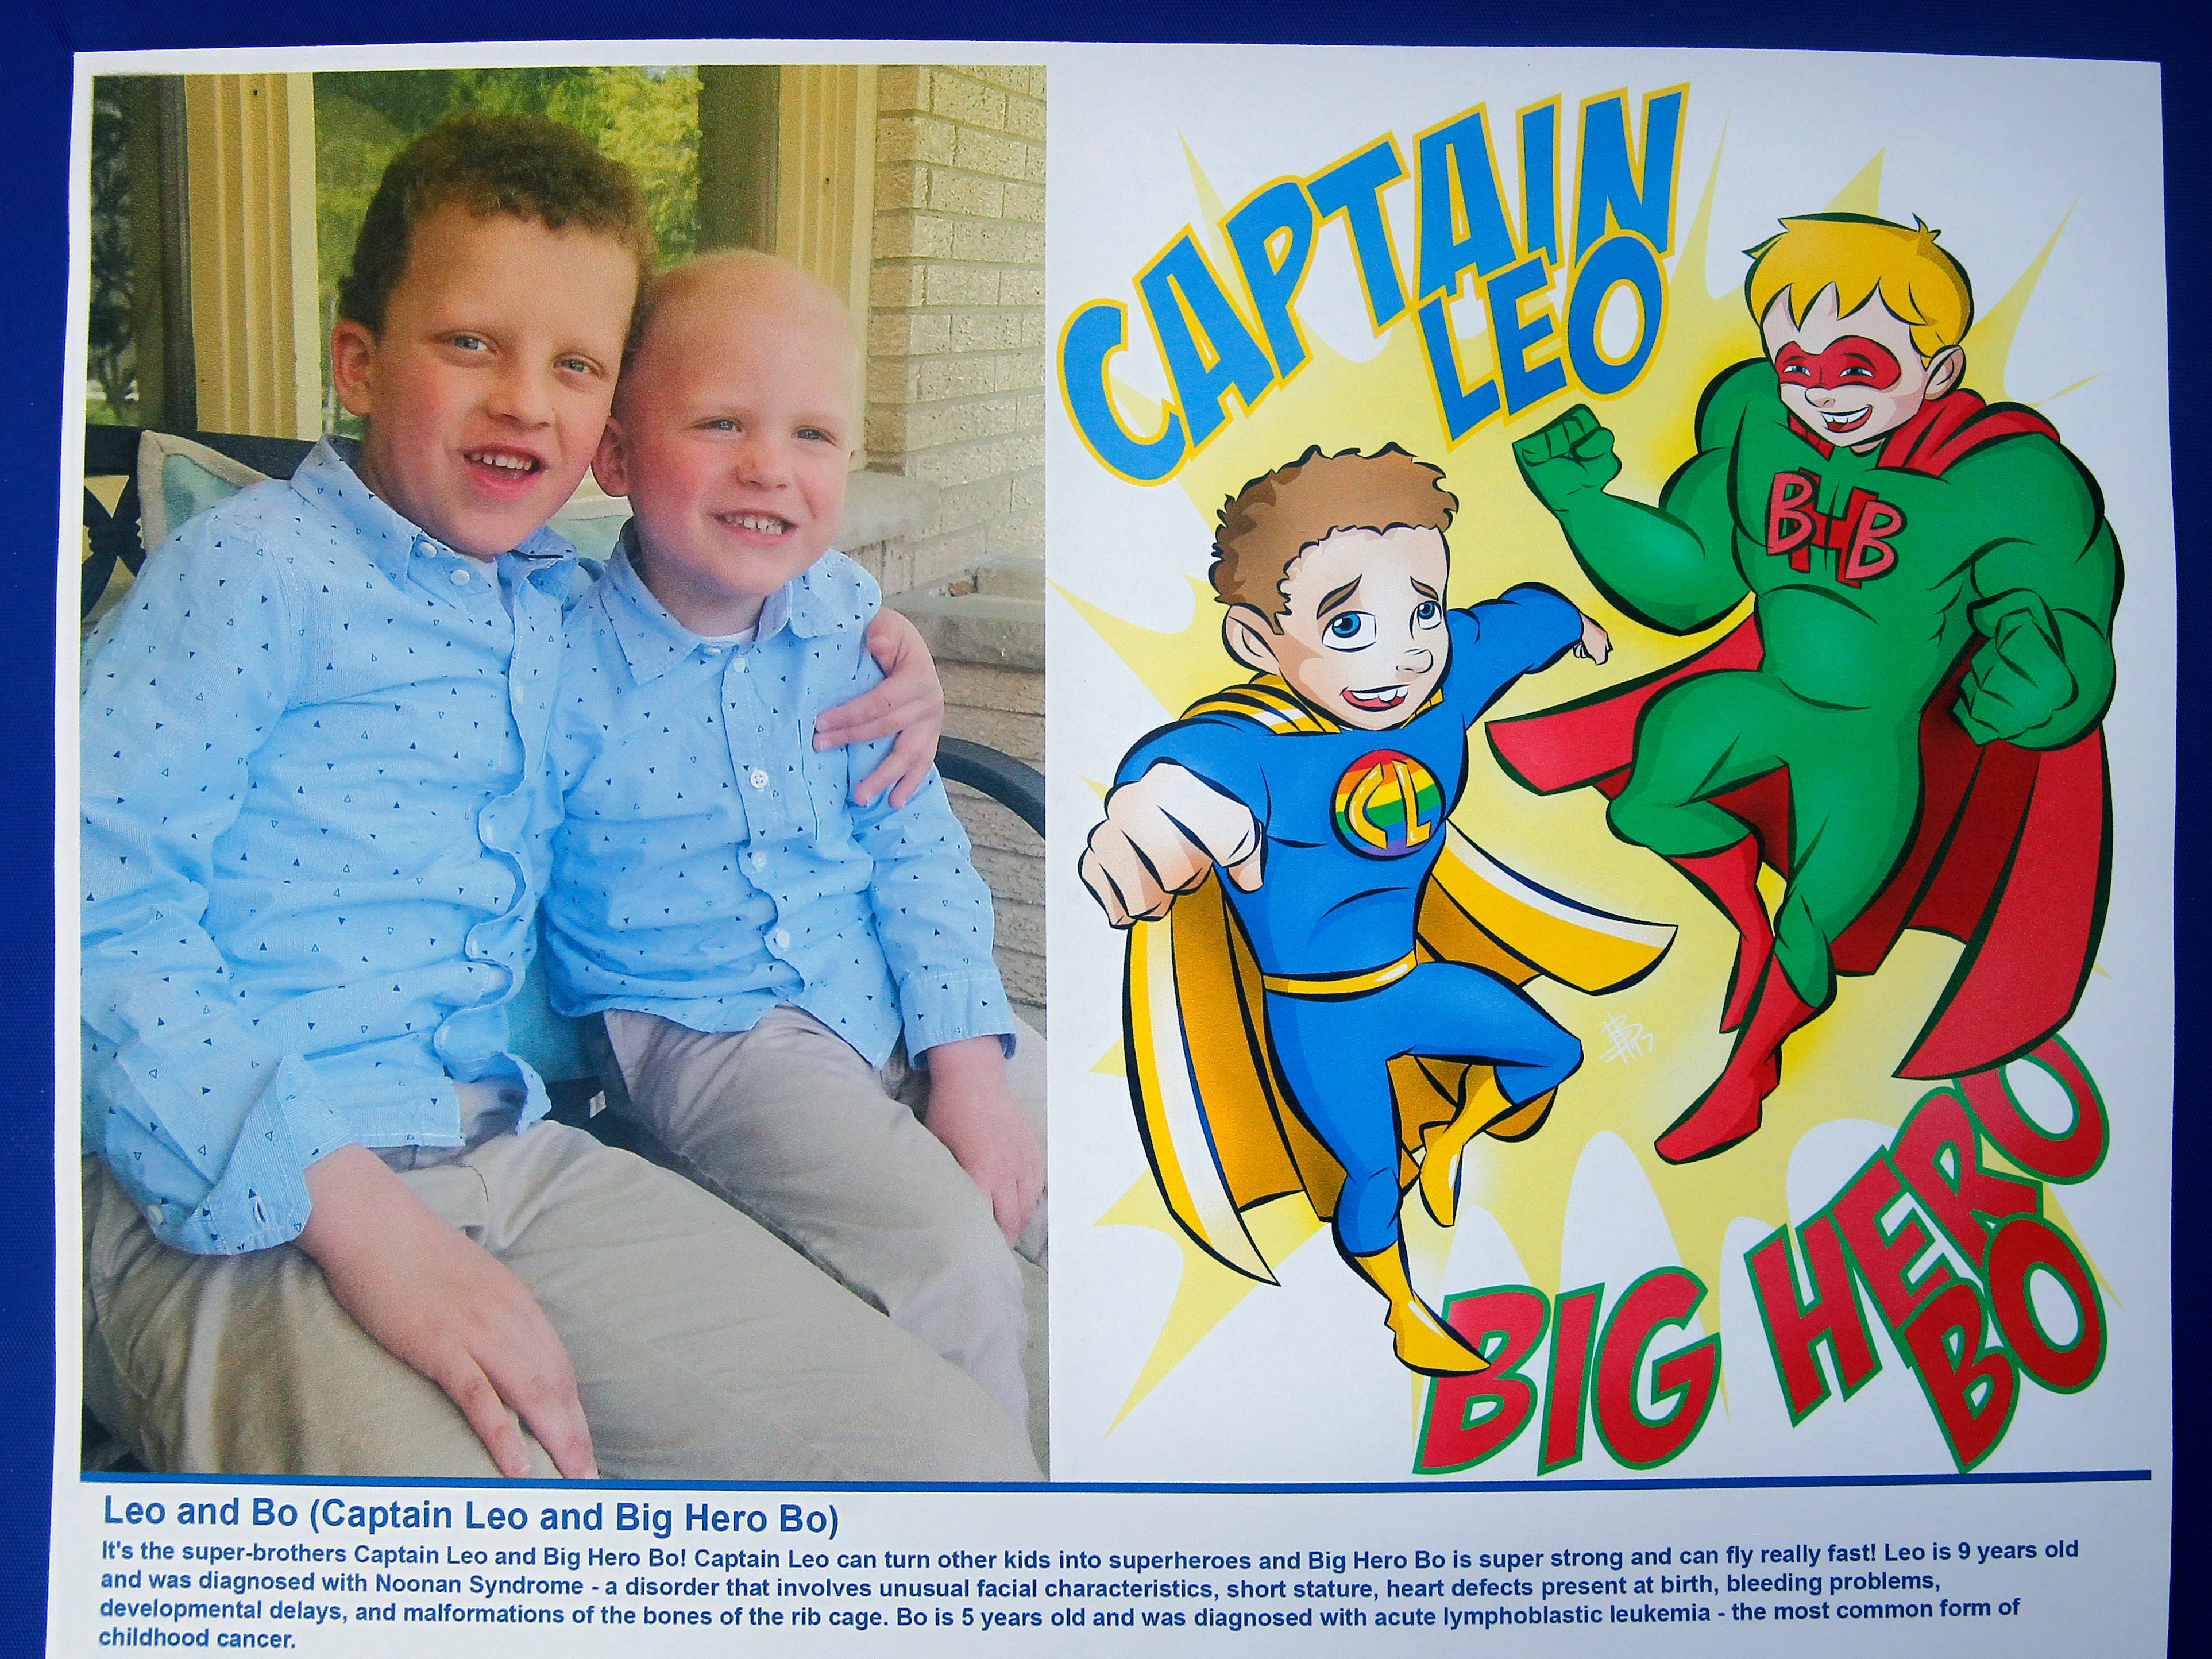 Superhero brothers, Leo as Captain Leo, left, and Bo, as Big Hero Bo, were created by Bryan Dyer, owner of You Are the Hero and an illustrator for kids with chronic or critical conditions.